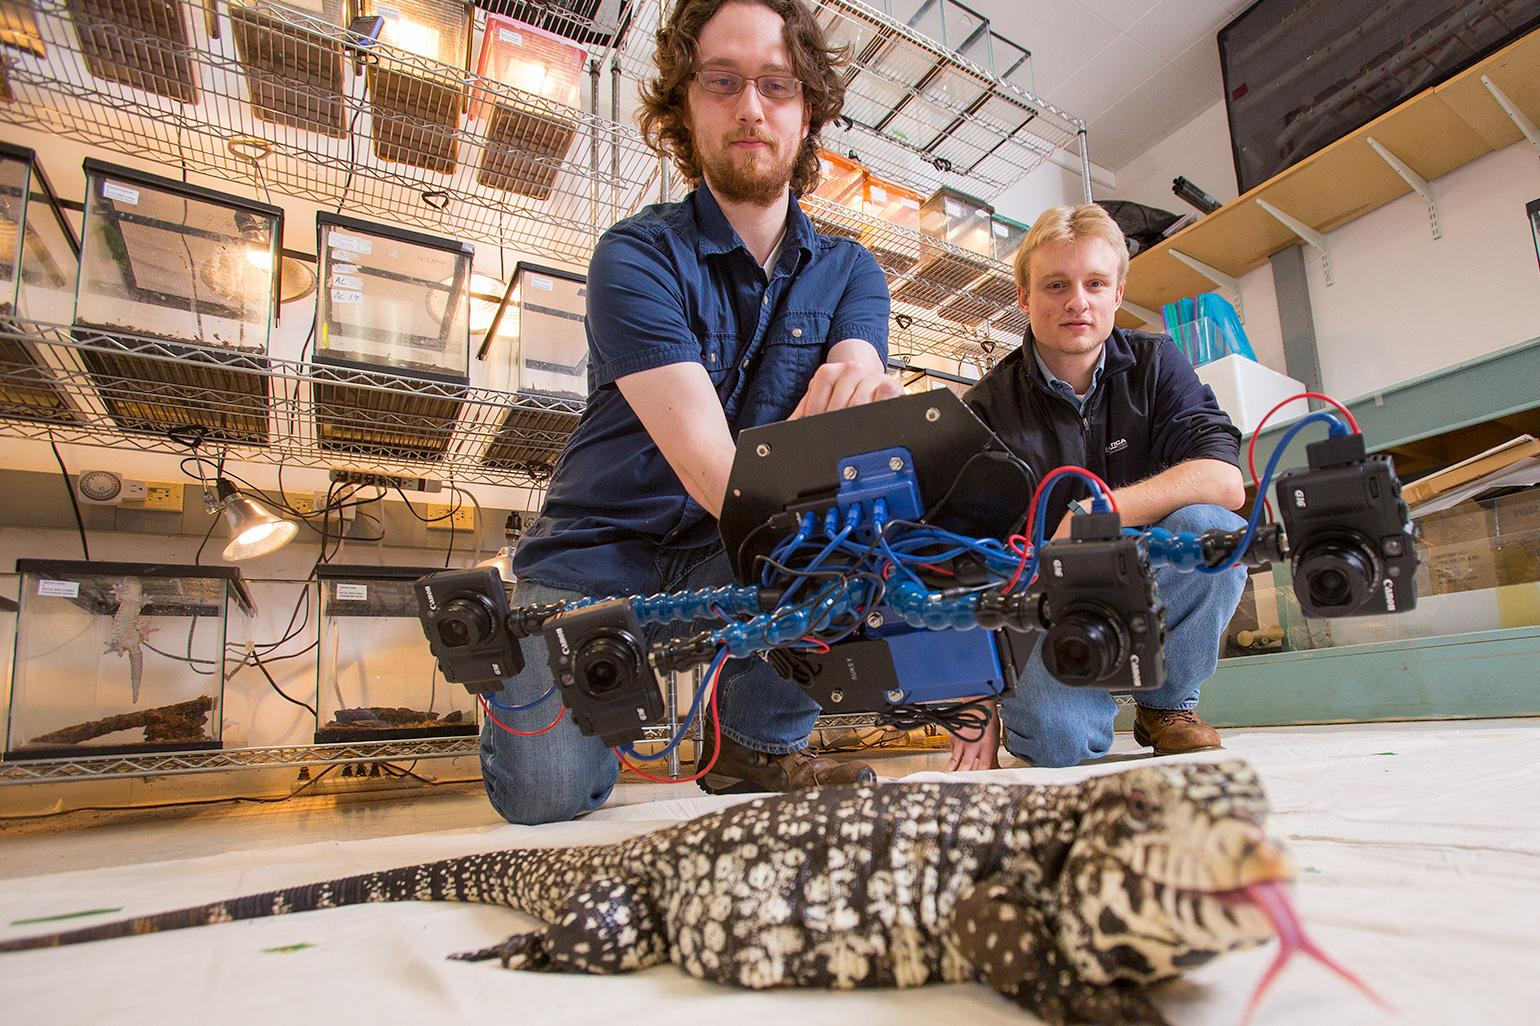 The original Beastcam - UMASS Amherst undergraduates Dylan Briggs and Kasey Smart are shown taking images of a Tegu using the original handheld Beastcam.